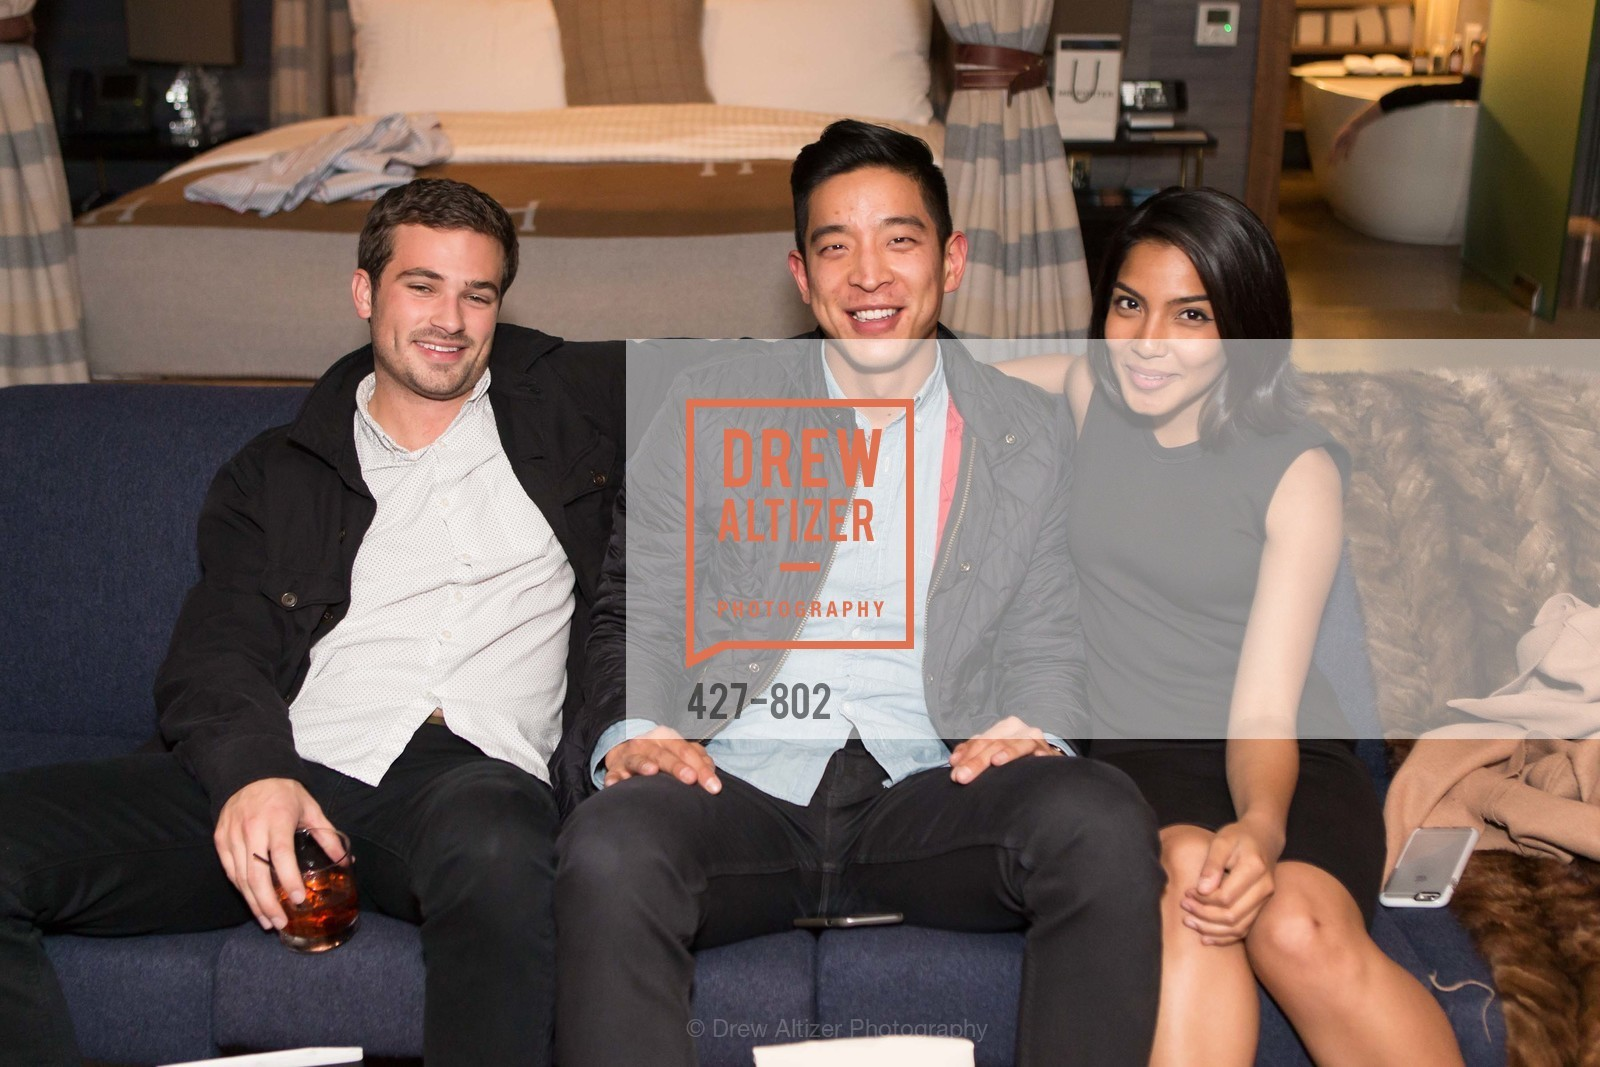 Jordan Bewtner, Alex Kim, Zara Rahim, MR PORTER Celebrate The San Francisco Issue of The Journal, US, April 24th, 2015,Drew Altizer, Drew Altizer Photography, full-service agency, private events, San Francisco photographer, photographer california